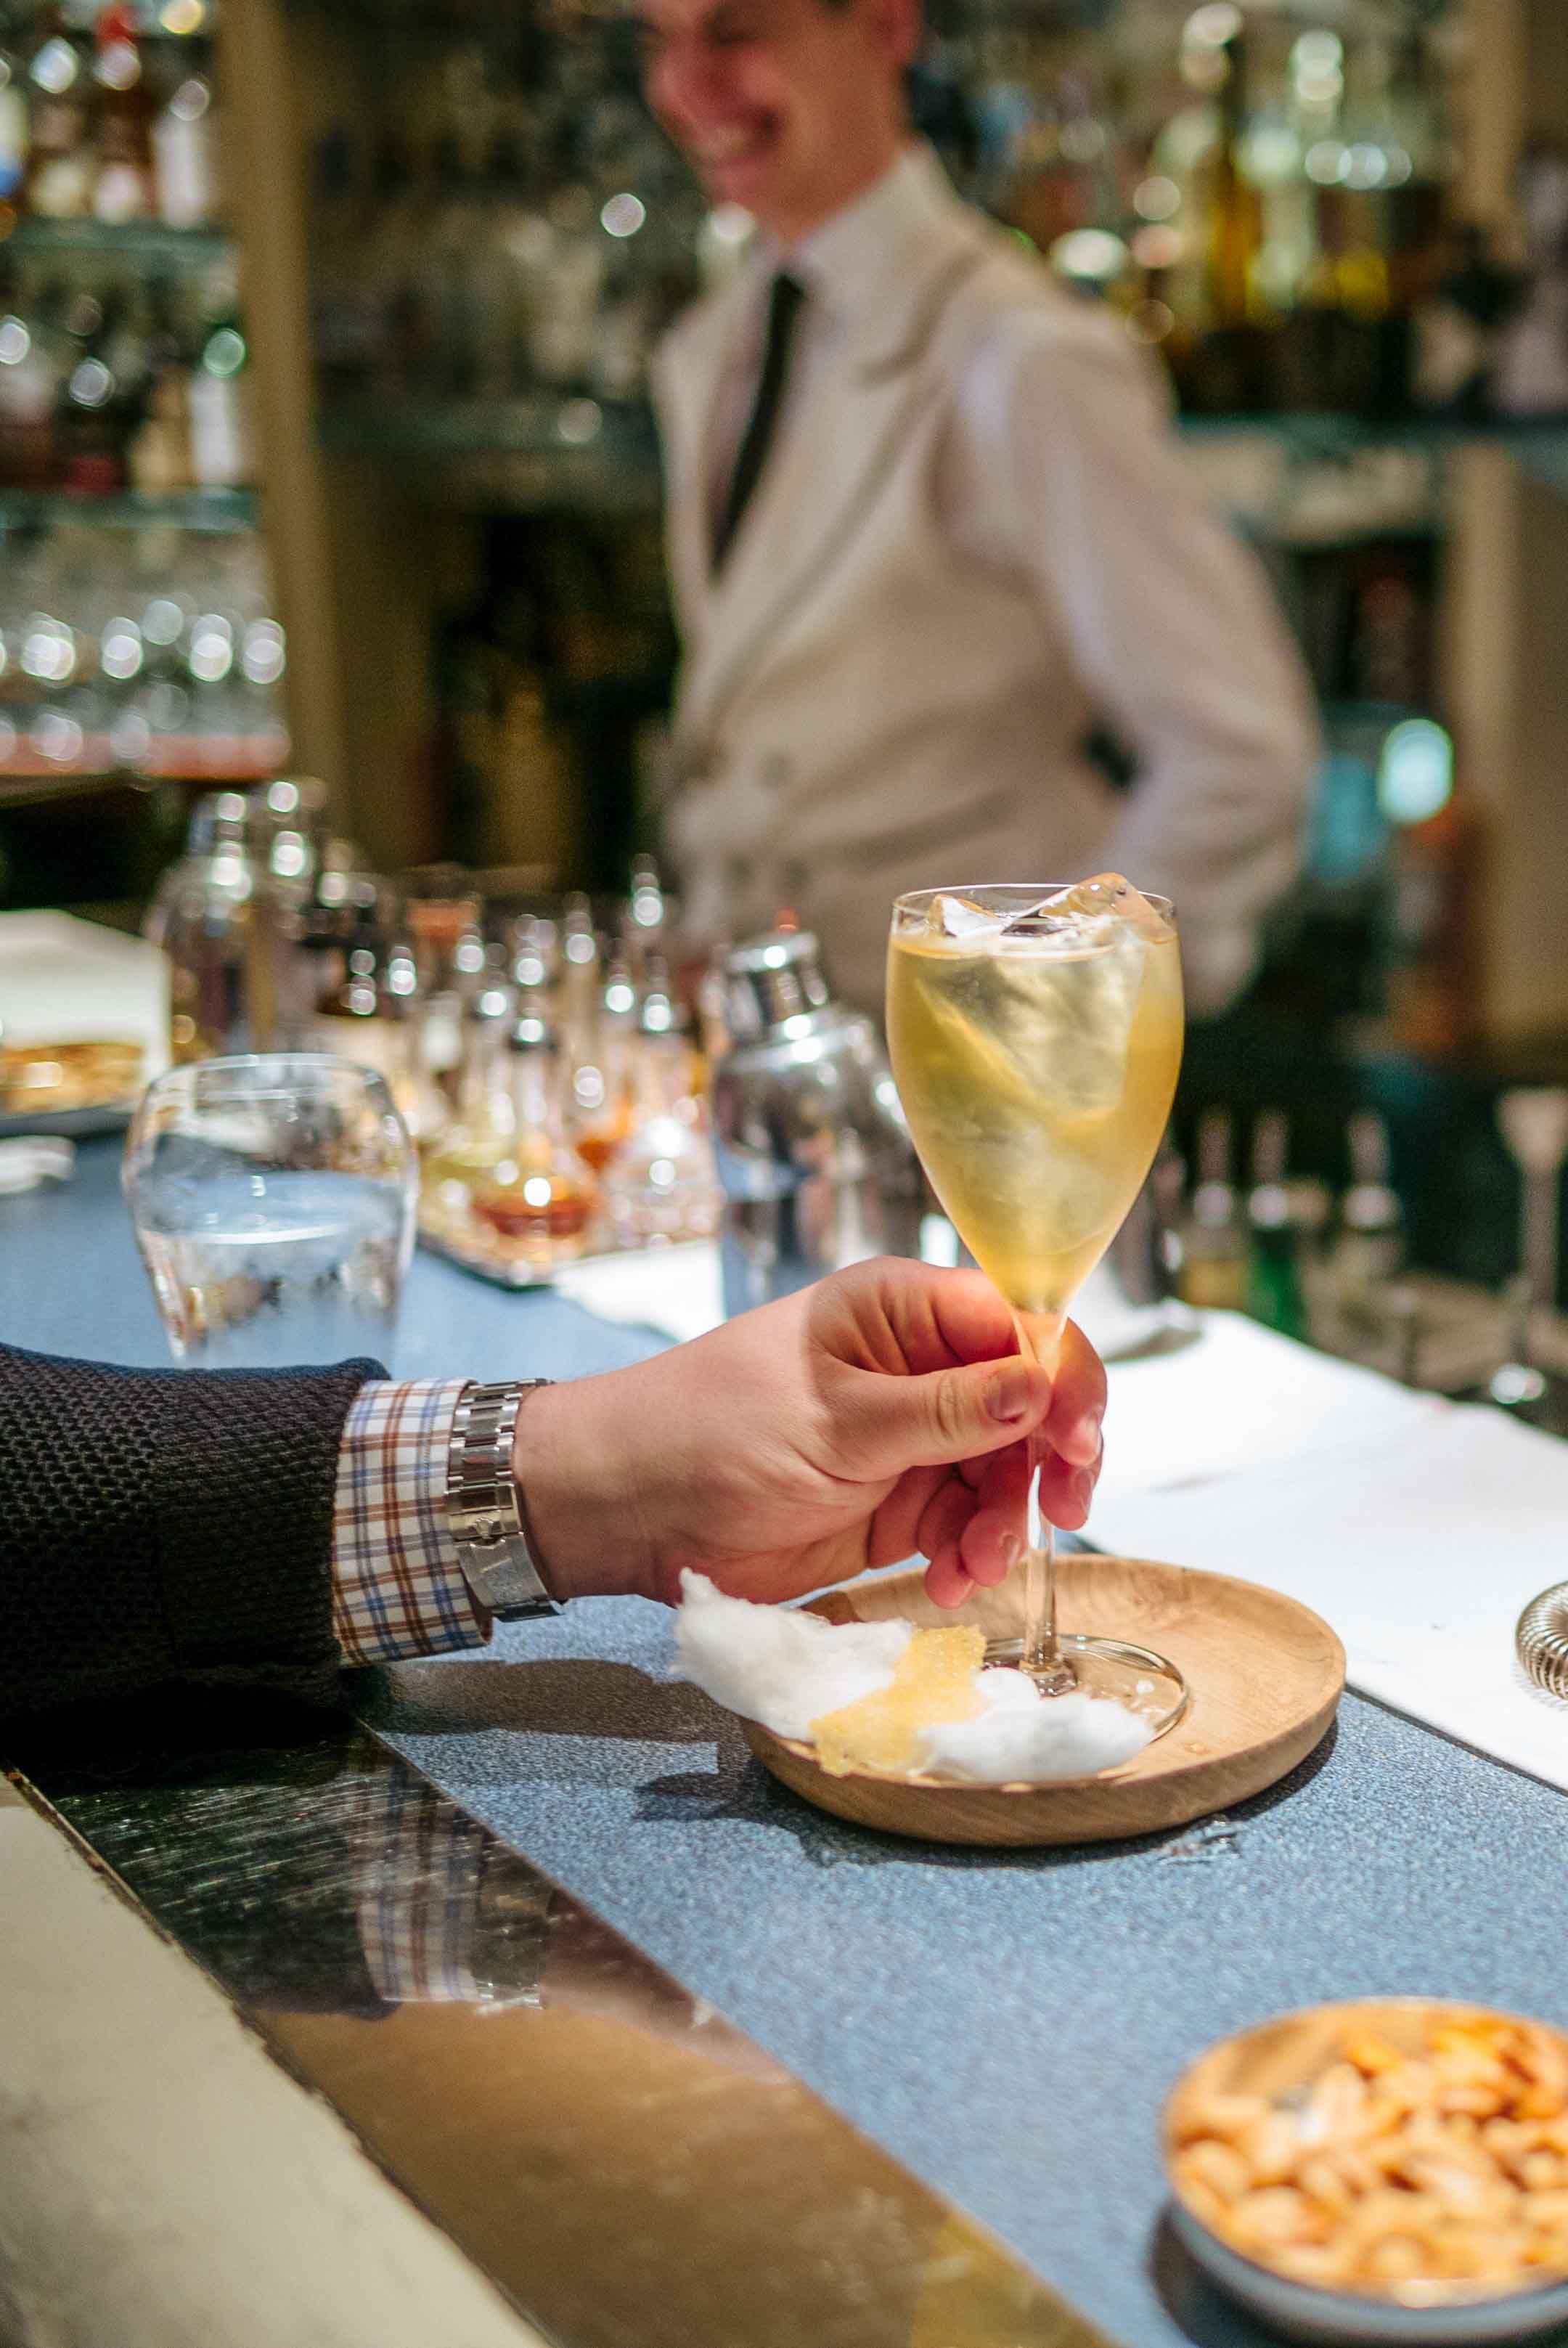 Visit The American Bar in London at The Savoy Hotel for cocktails - try this cocktail with